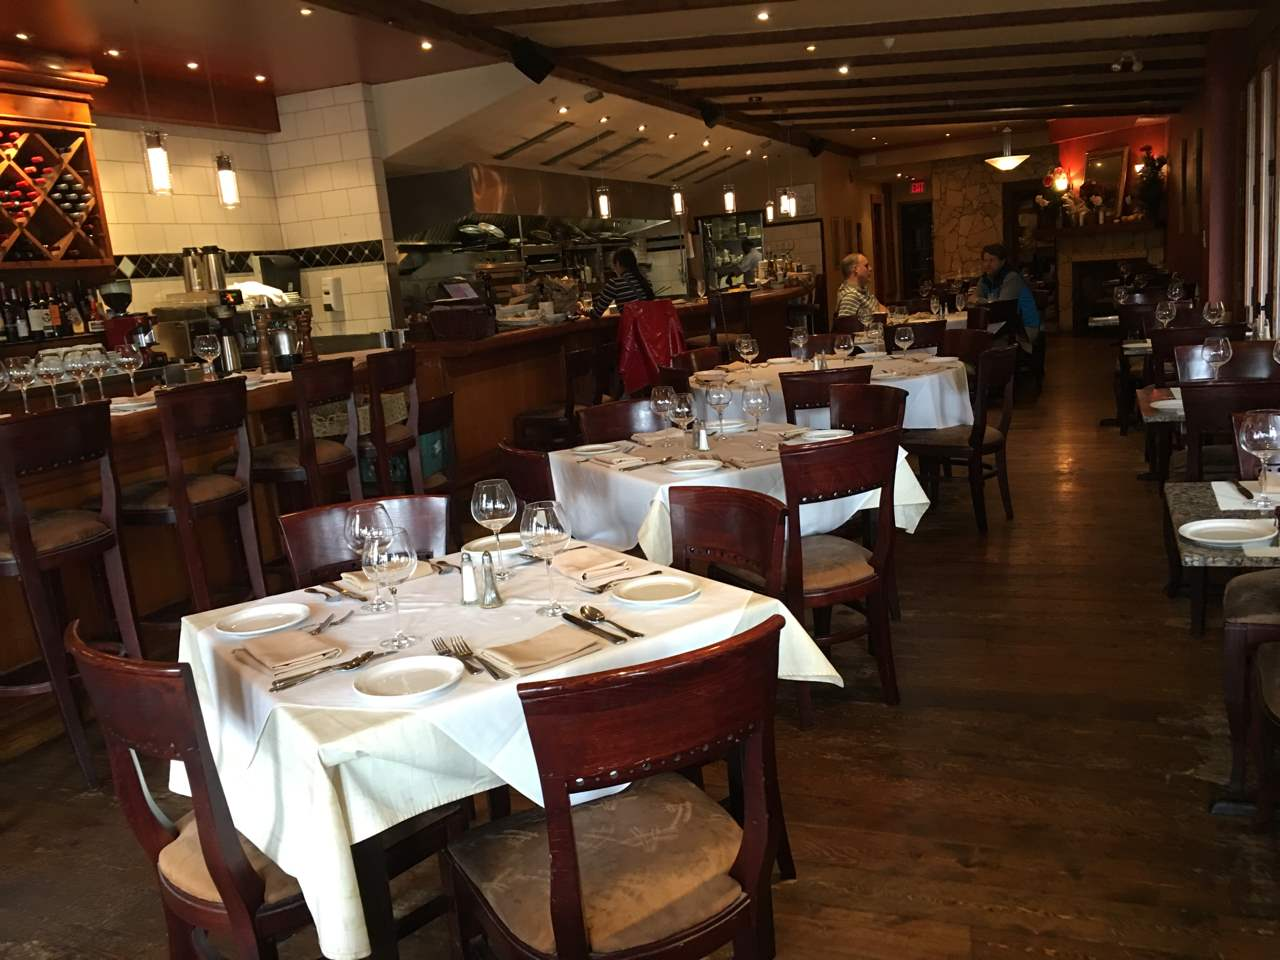 Long Established Italian Restaurant nestled in a Very Supporting South Granville Neighbourhood! This Spacious Open Kitchen / Restaurant has 90 seats Inside PLUS 40 Seats on the Patio and has Great Street Exposure on to West 57th Ave. The Total Space of the Restaurant is 2,898 SQFT, with 1,831 SQ FT being the Main Floor Restaurant Space, plus an additional 1067 SQ FT of SPACE in the lower level being Office Space, Storage and Washrooms. This Opportunity may be Purchased with or without the name. Staff is unaware of the Sale. All Showings are by appointment please.